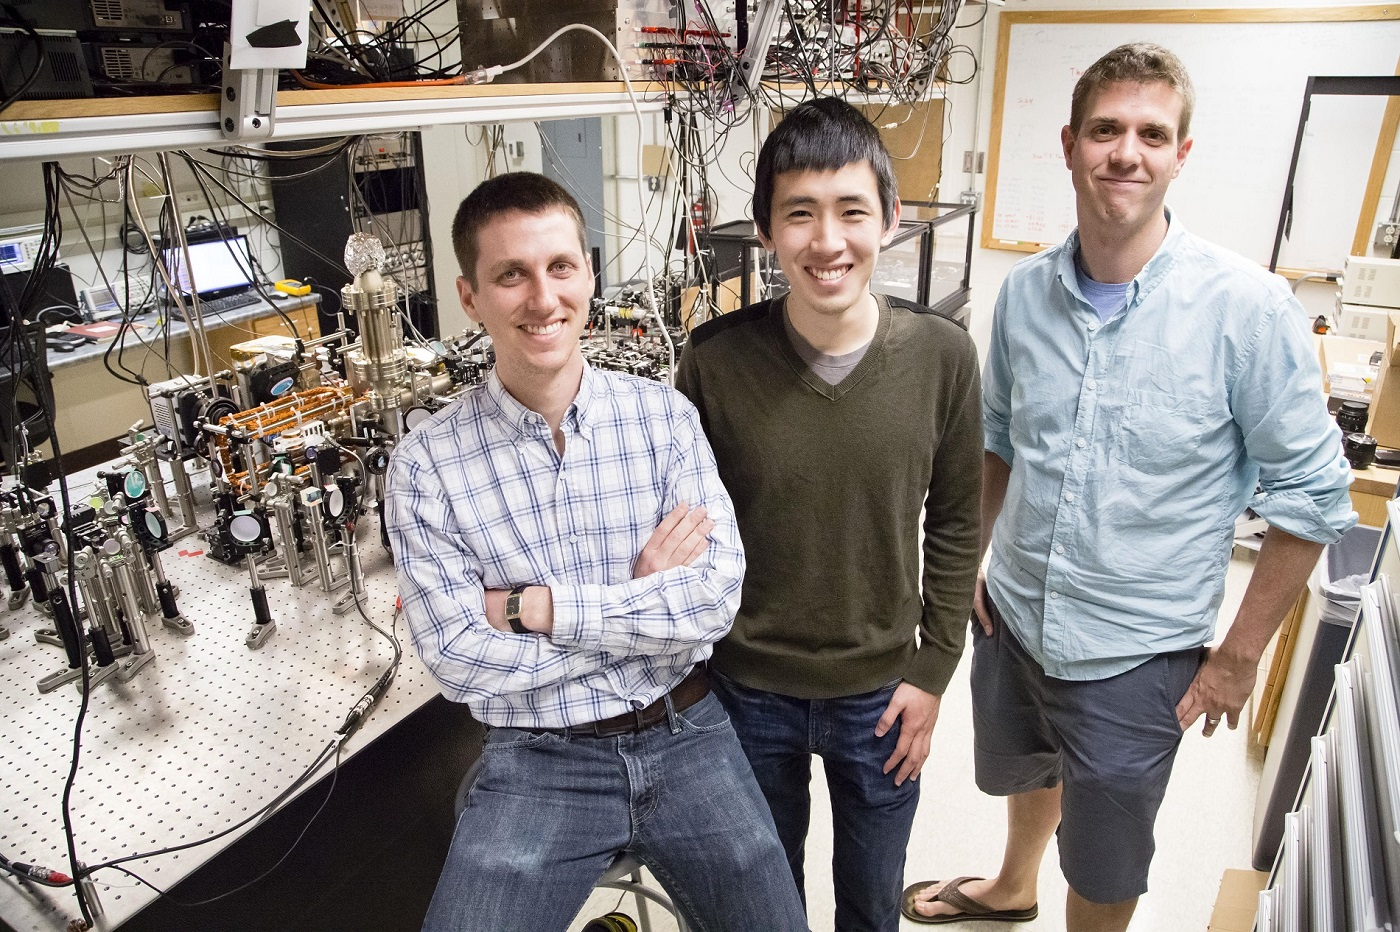 Graduate students Eric Meier and Fangzhao Alex An with Bryce Gadway in Loomis Laboratory